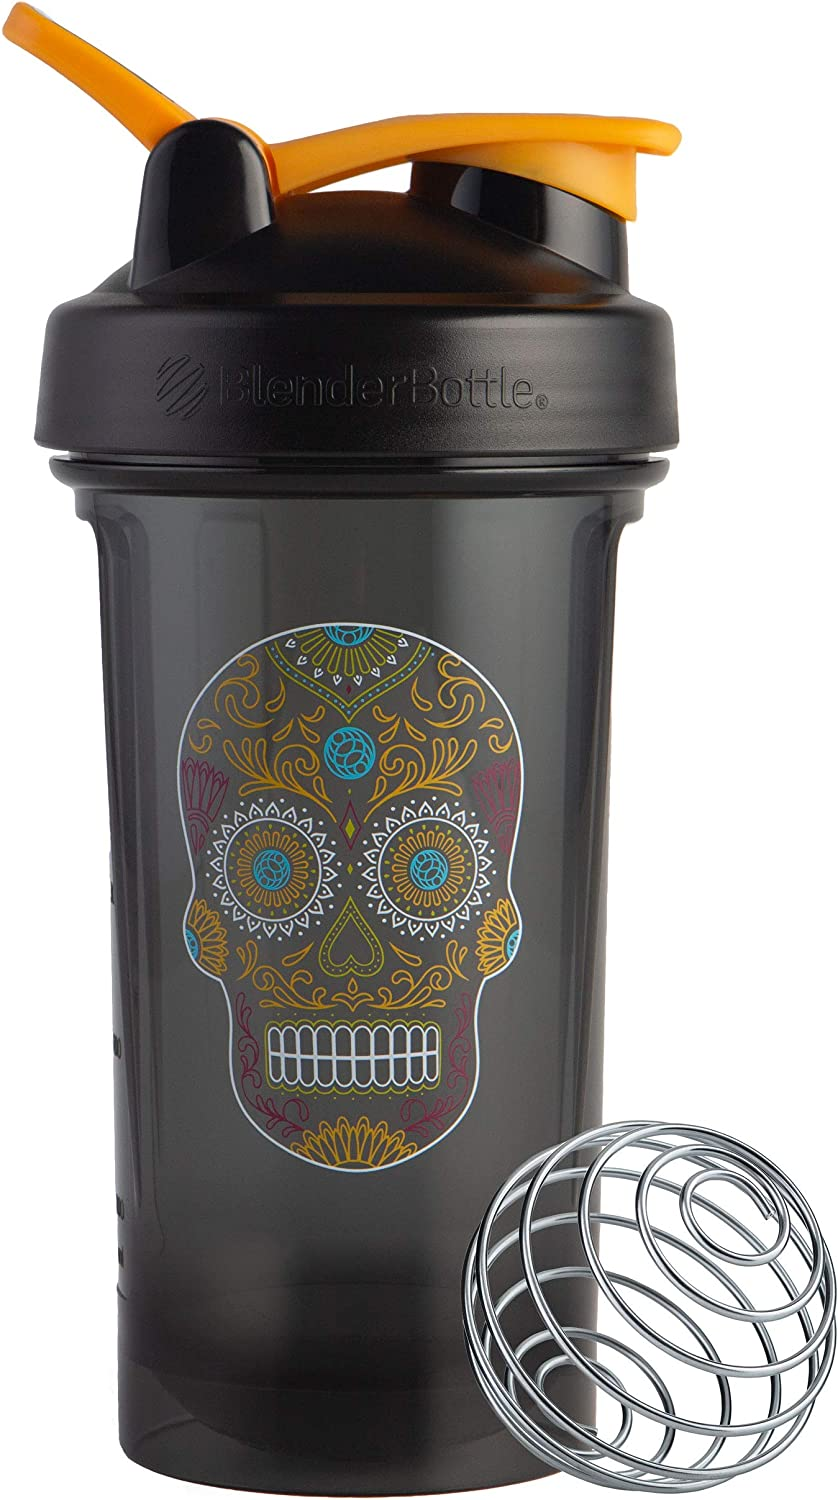 BlenderBottle Sugar Skull Pro Series 24-Ounce Shaker Bottle, Black/Colorful